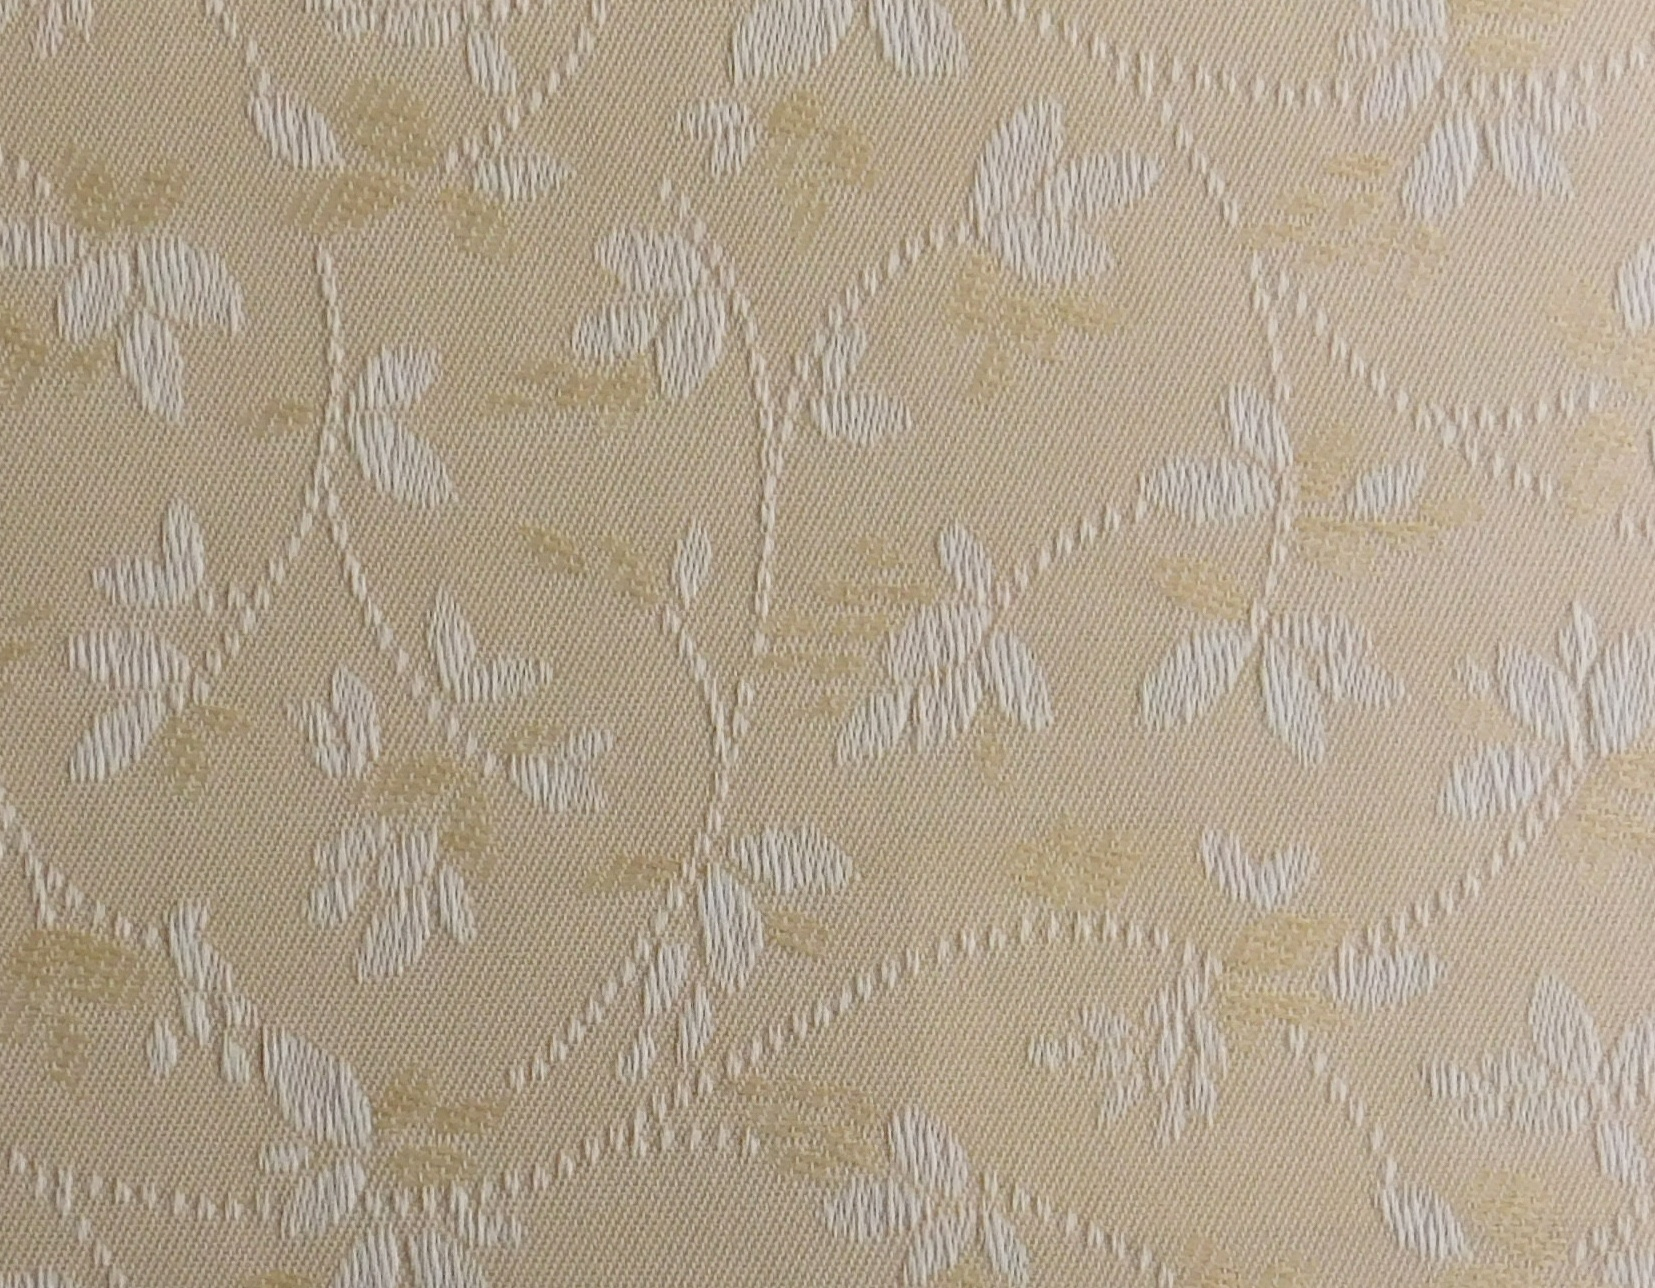 Alondra Antique Cream Blind Sample Fabric